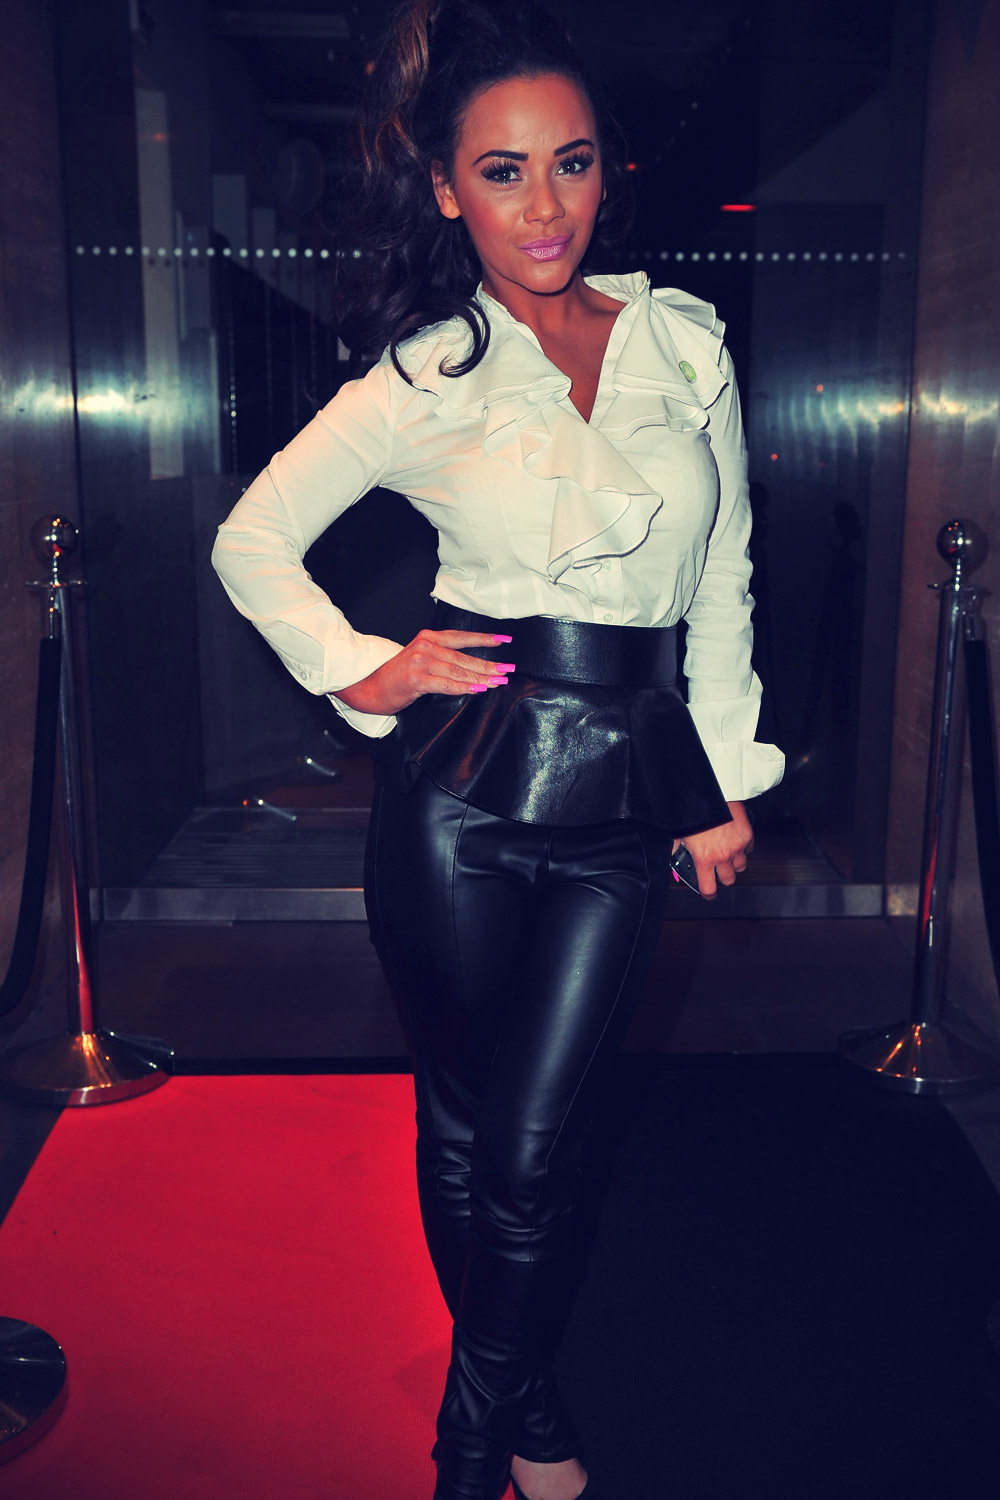 Chelsee Healey at Celebrity Cook Off